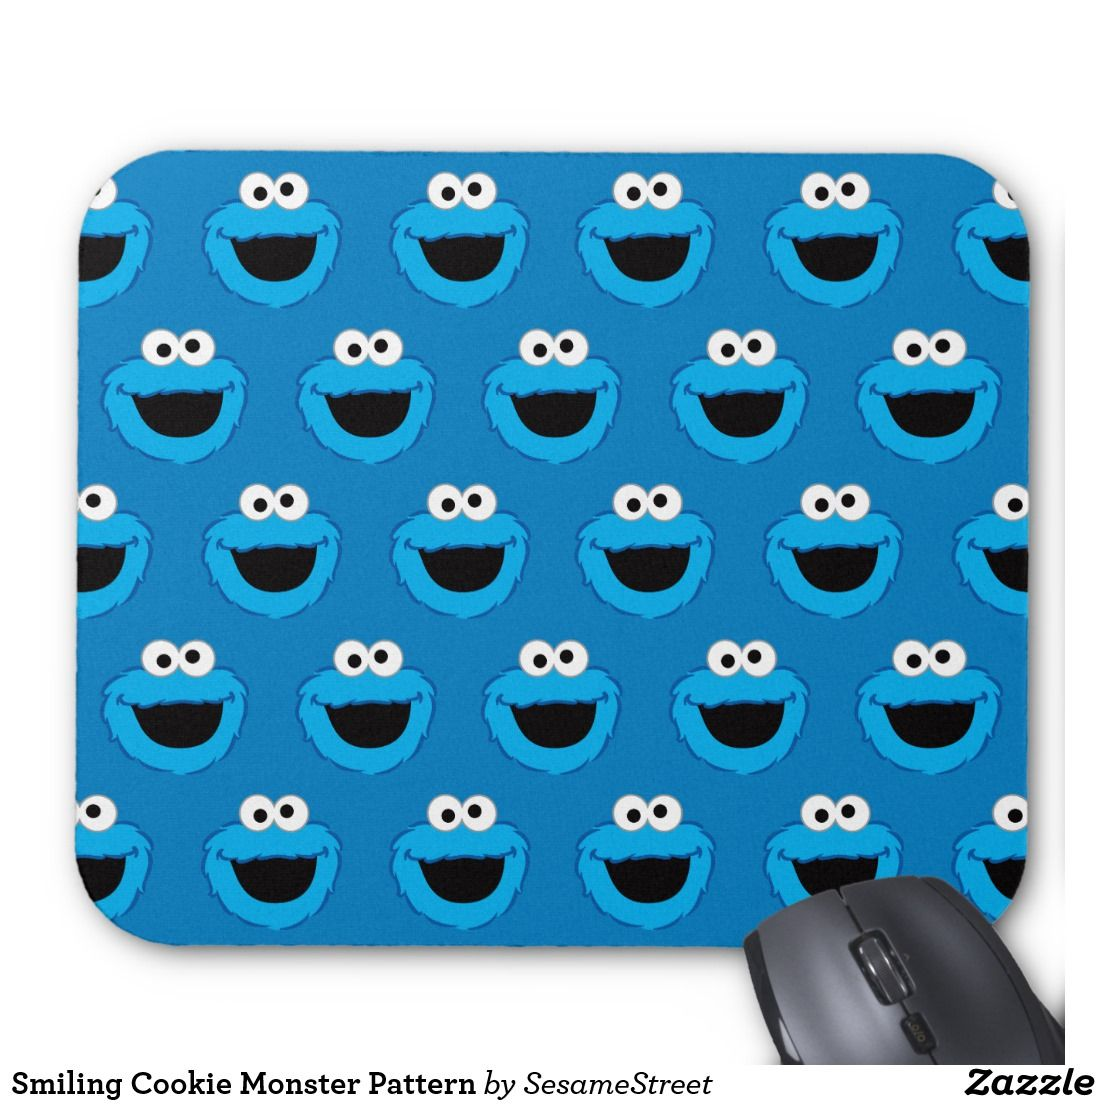 Smiling Cookie Monster Pattern Mouse Pad Zazzle Com